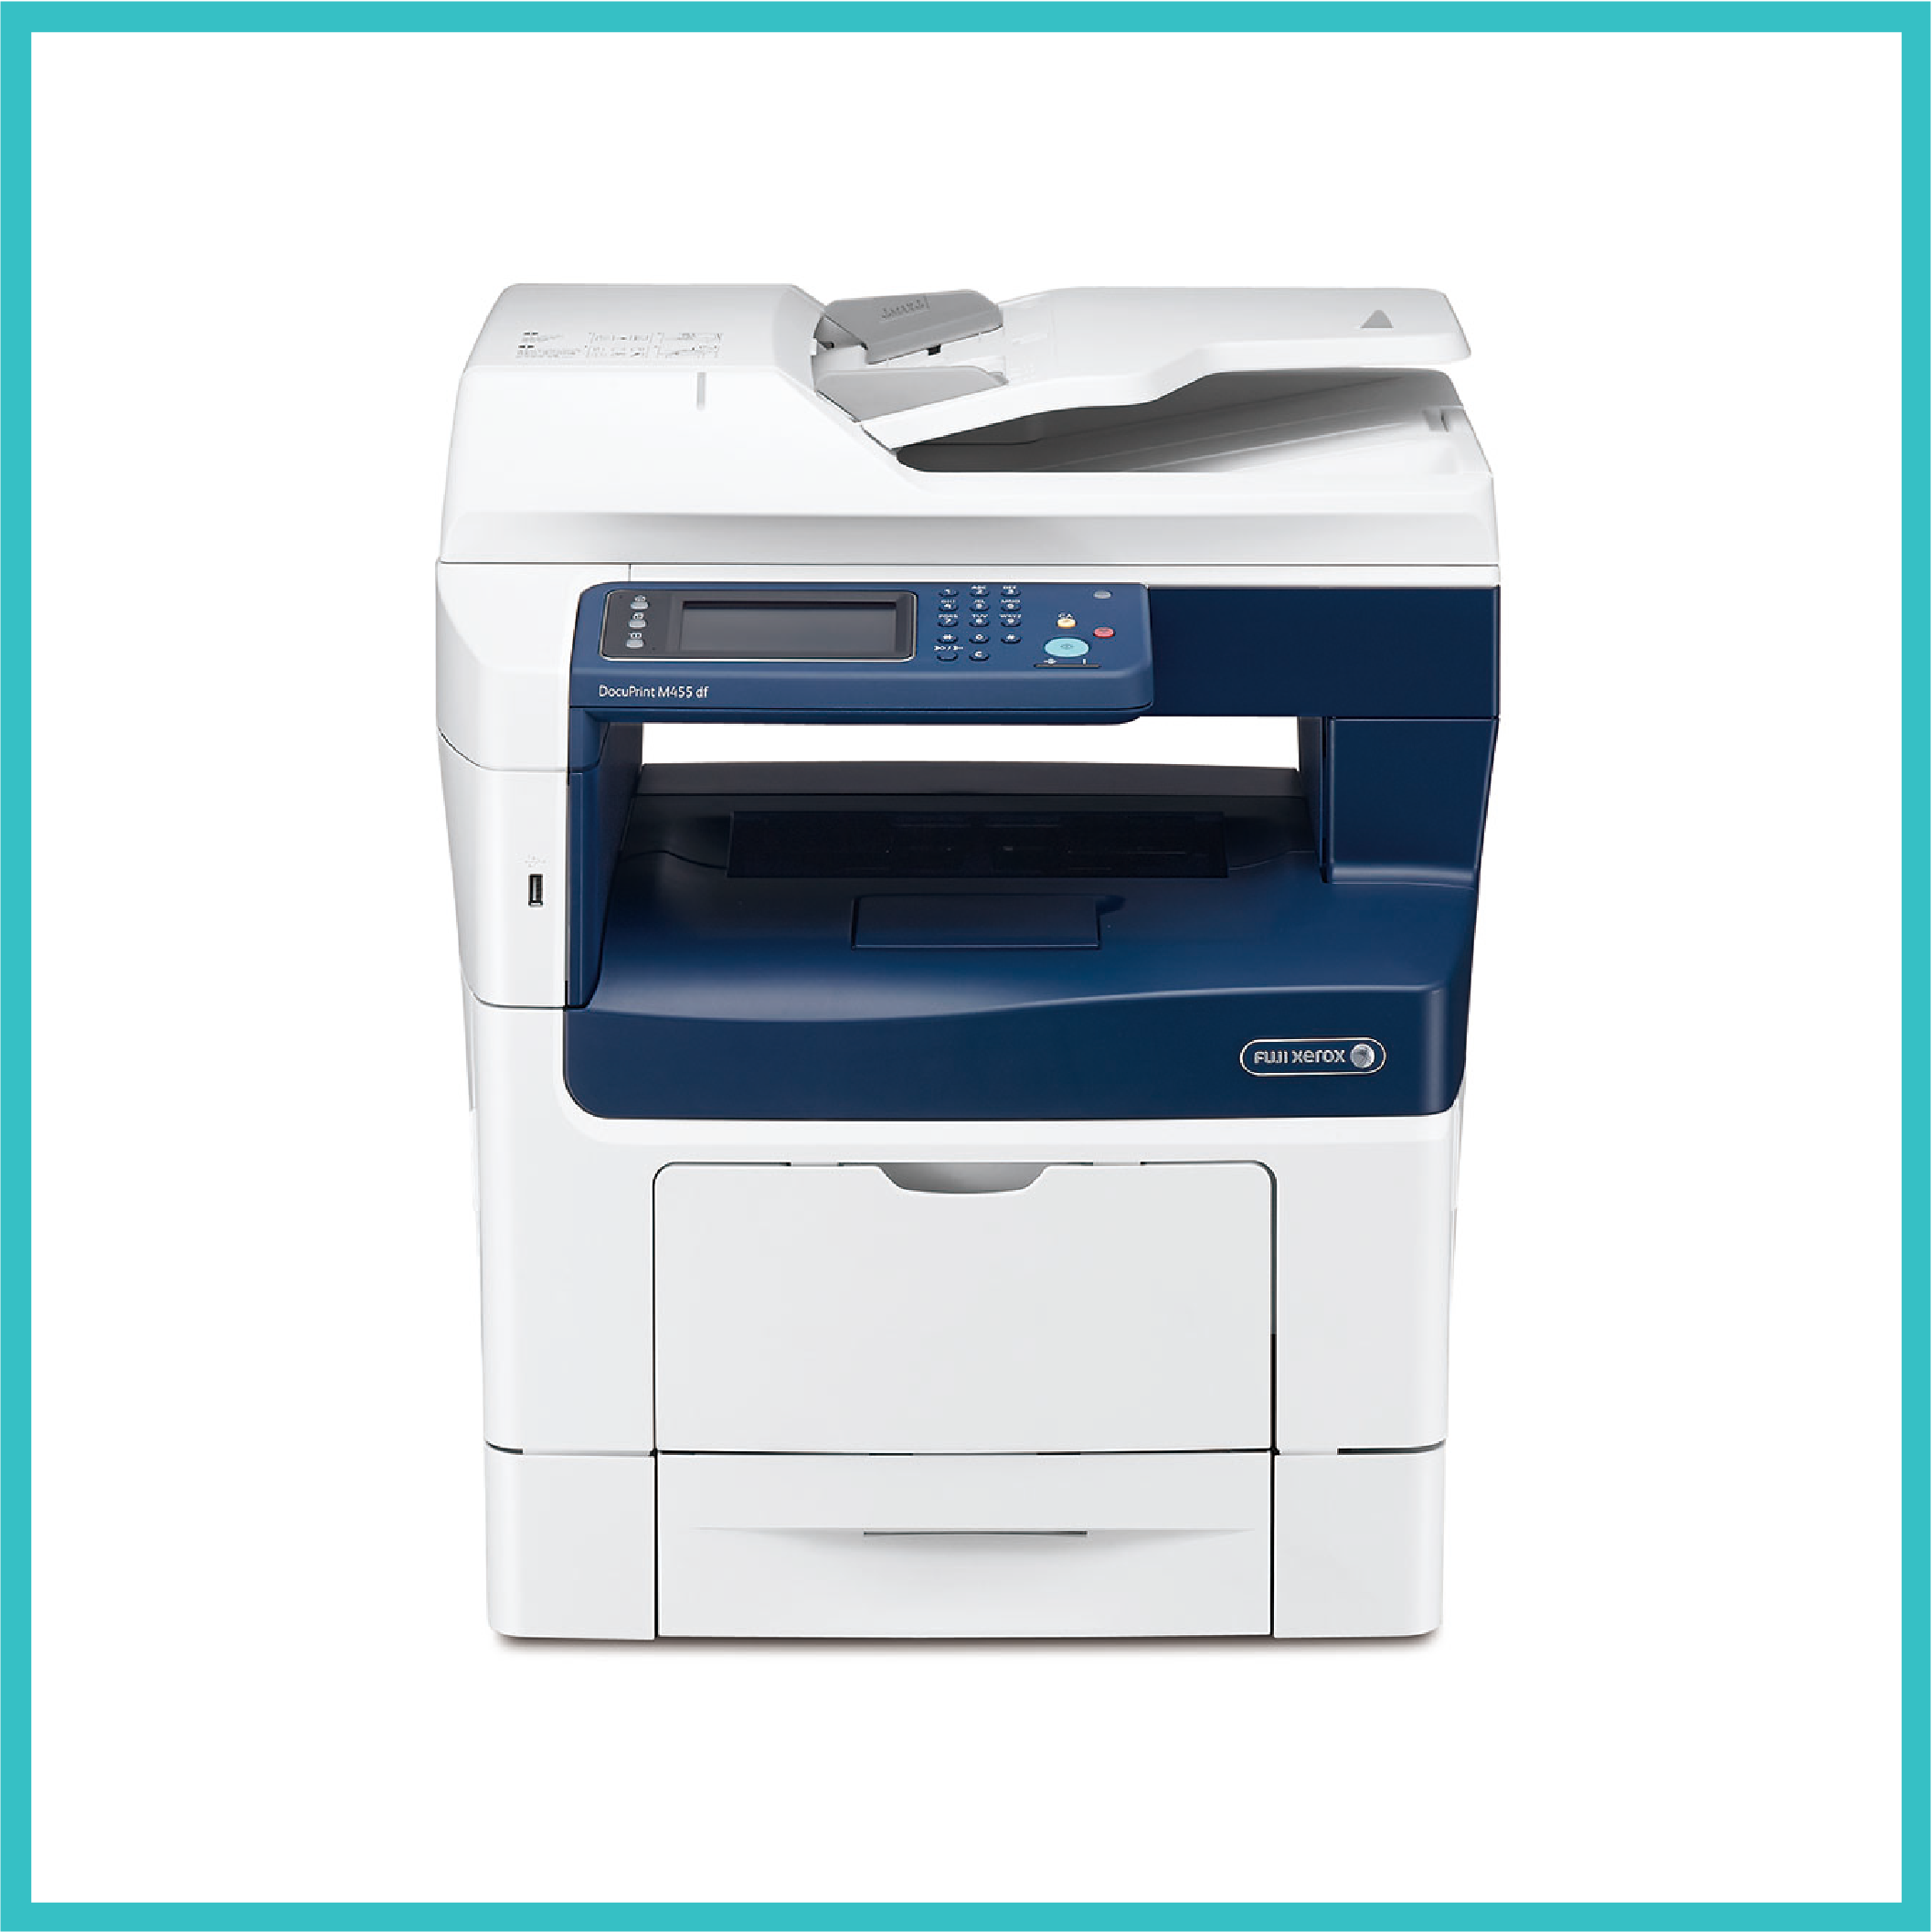 multipurpose Xerox M455 photocopier